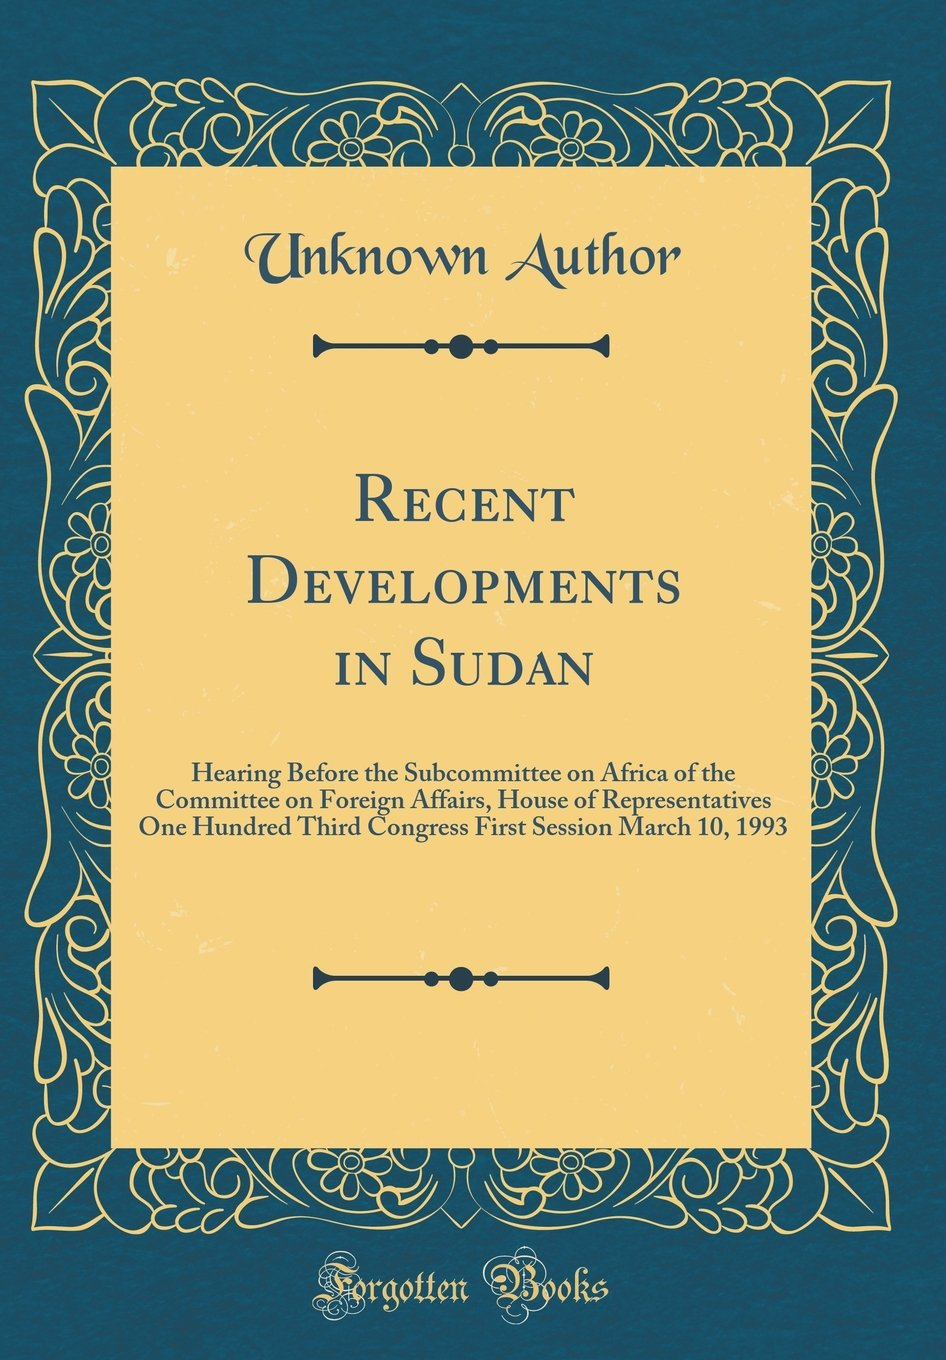 Download Recent Developments in Sudan: Hearing Before the Subcommittee on Africa of the Committee on Foreign Affairs, House of Representatives One Hundred ... Session March 10, 1993 (Classic Reprint) PDF Text fb2 book